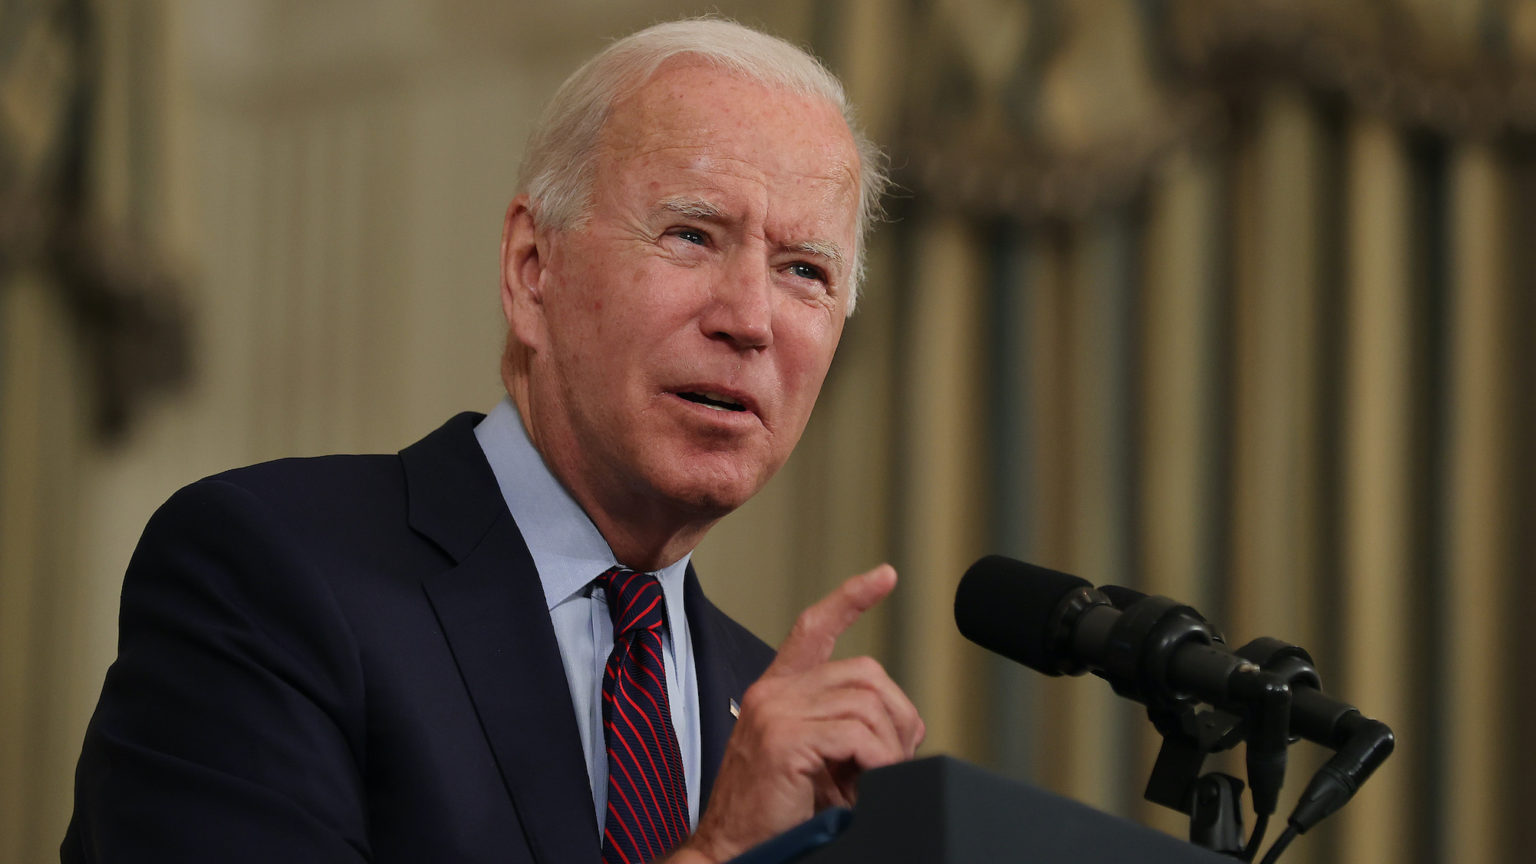 Biden is playing a dangerous game with Taiwan